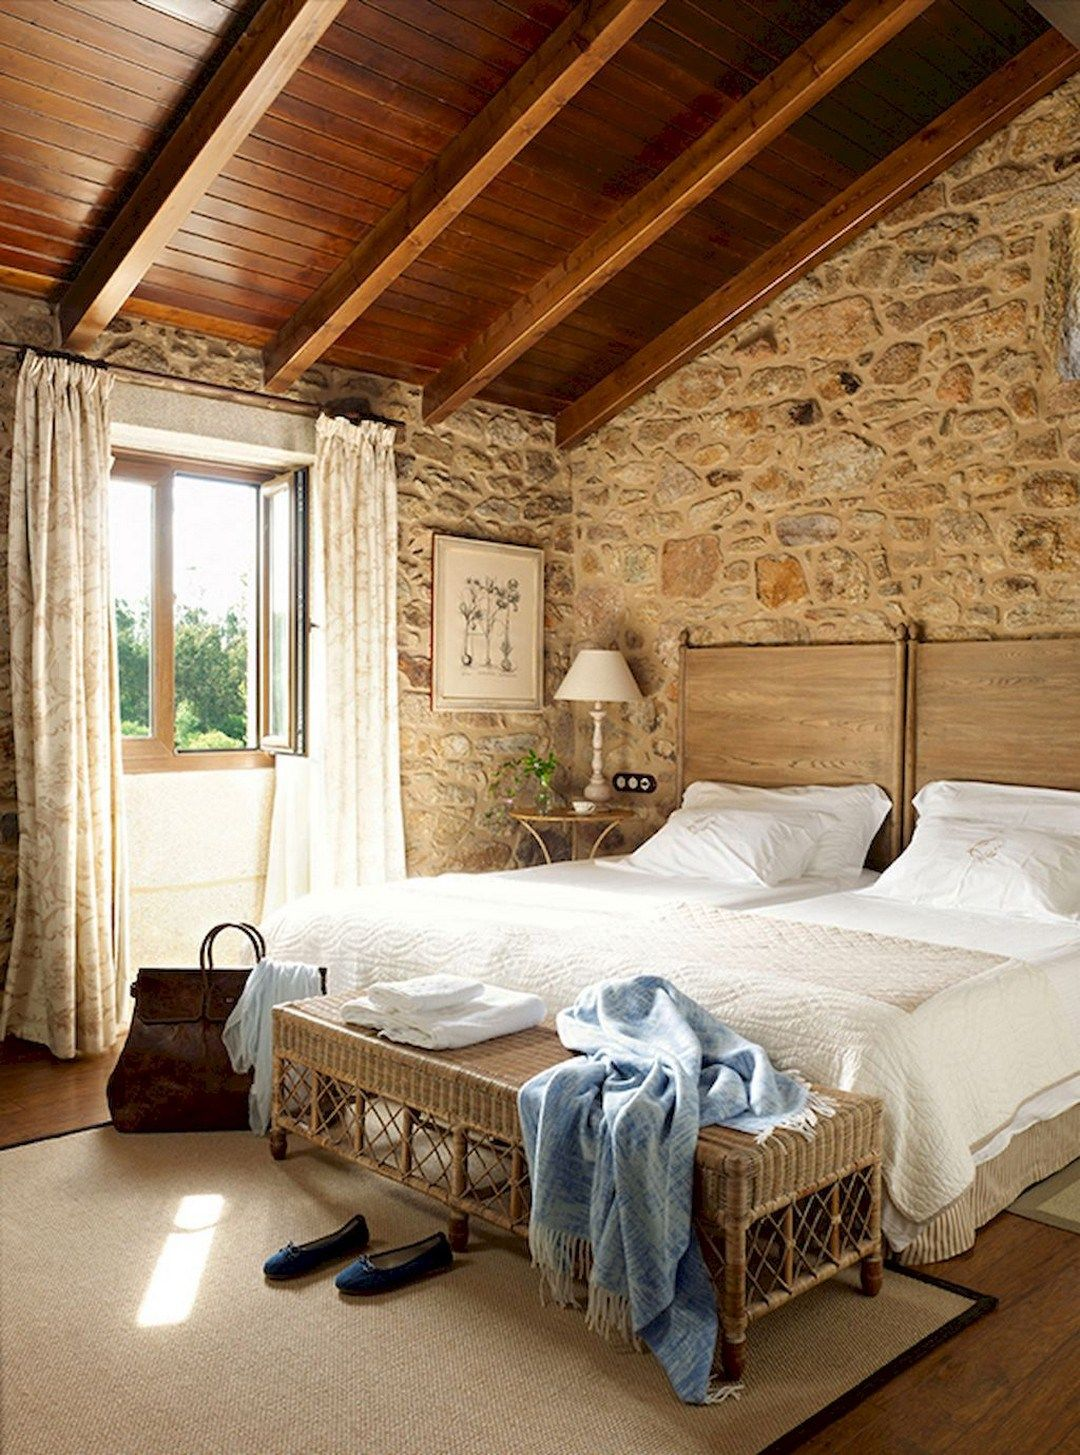 Rustic Romantic Bedroom Ideas: Best Ideas To Make Your Bedroom Extra Cozy And Romantic